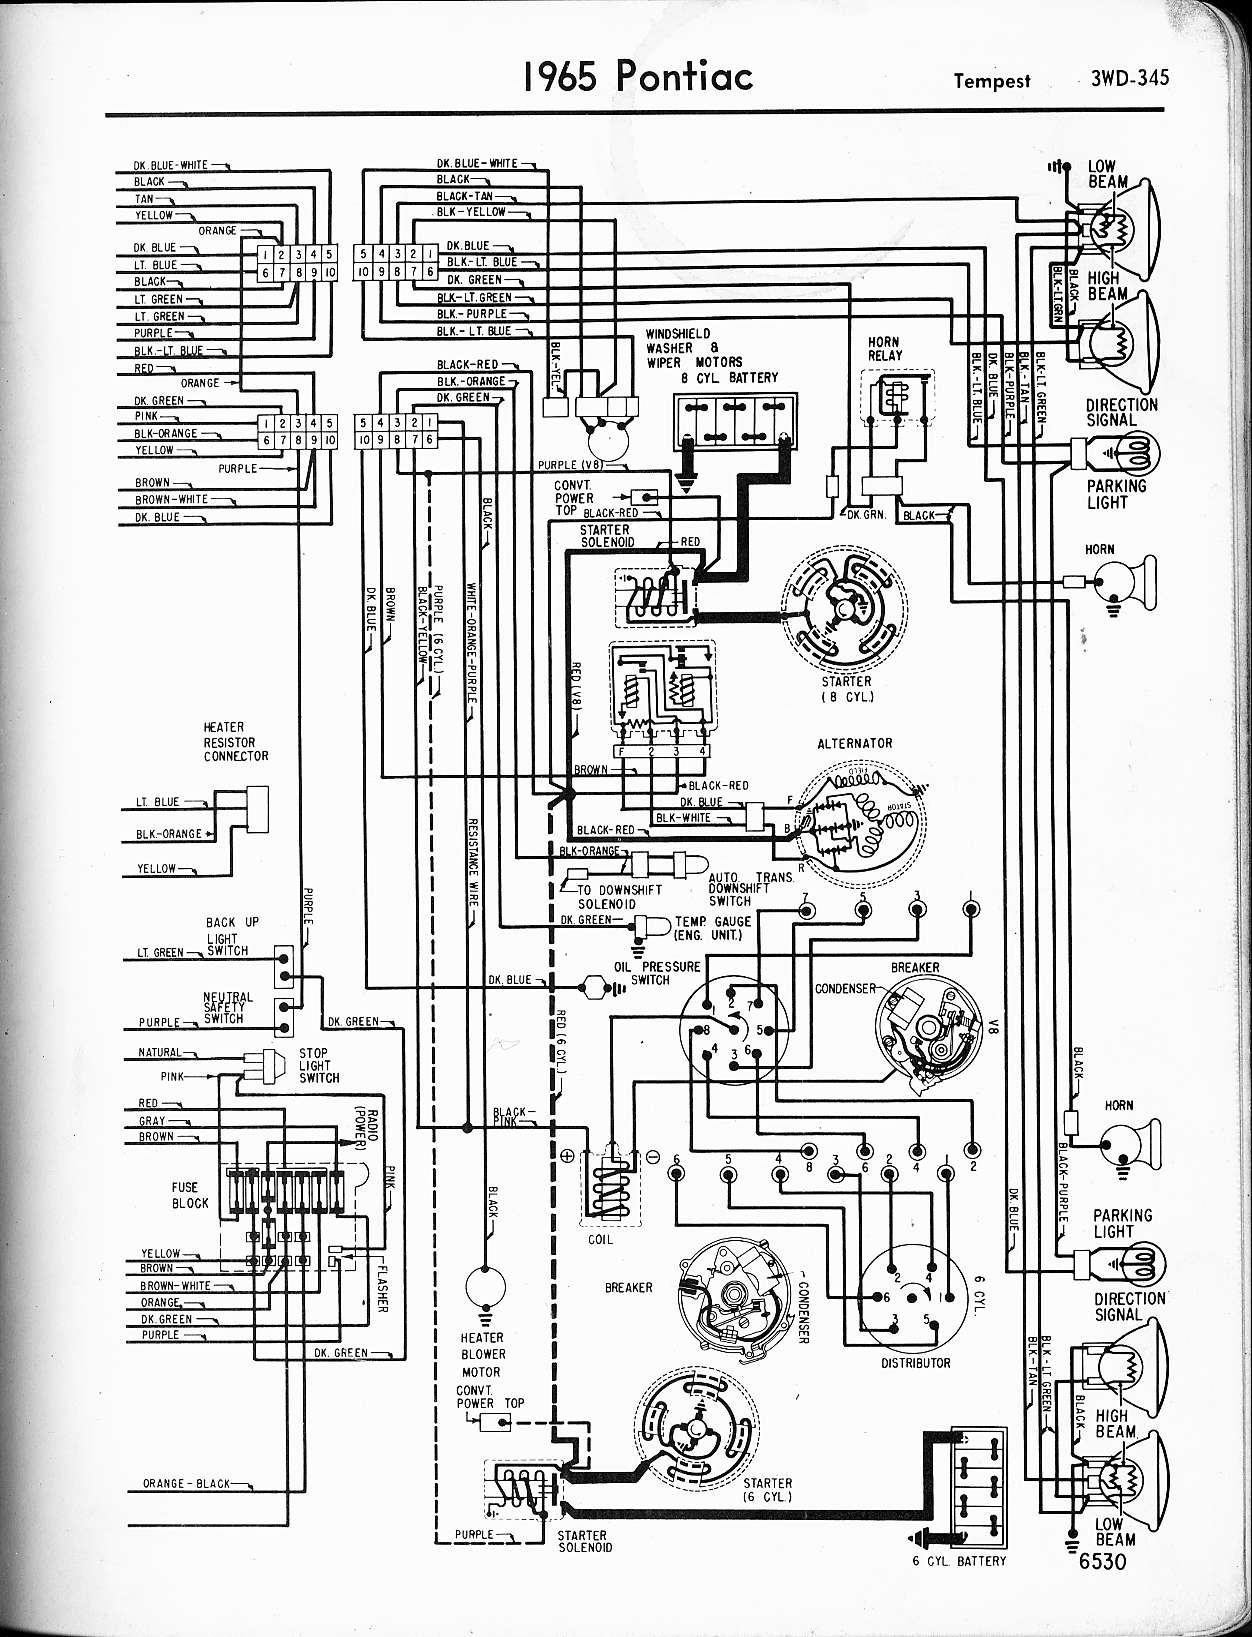 Index Mwire5765345: 67 Camaro Alternator Wiring Diagram At Nayabfun.com